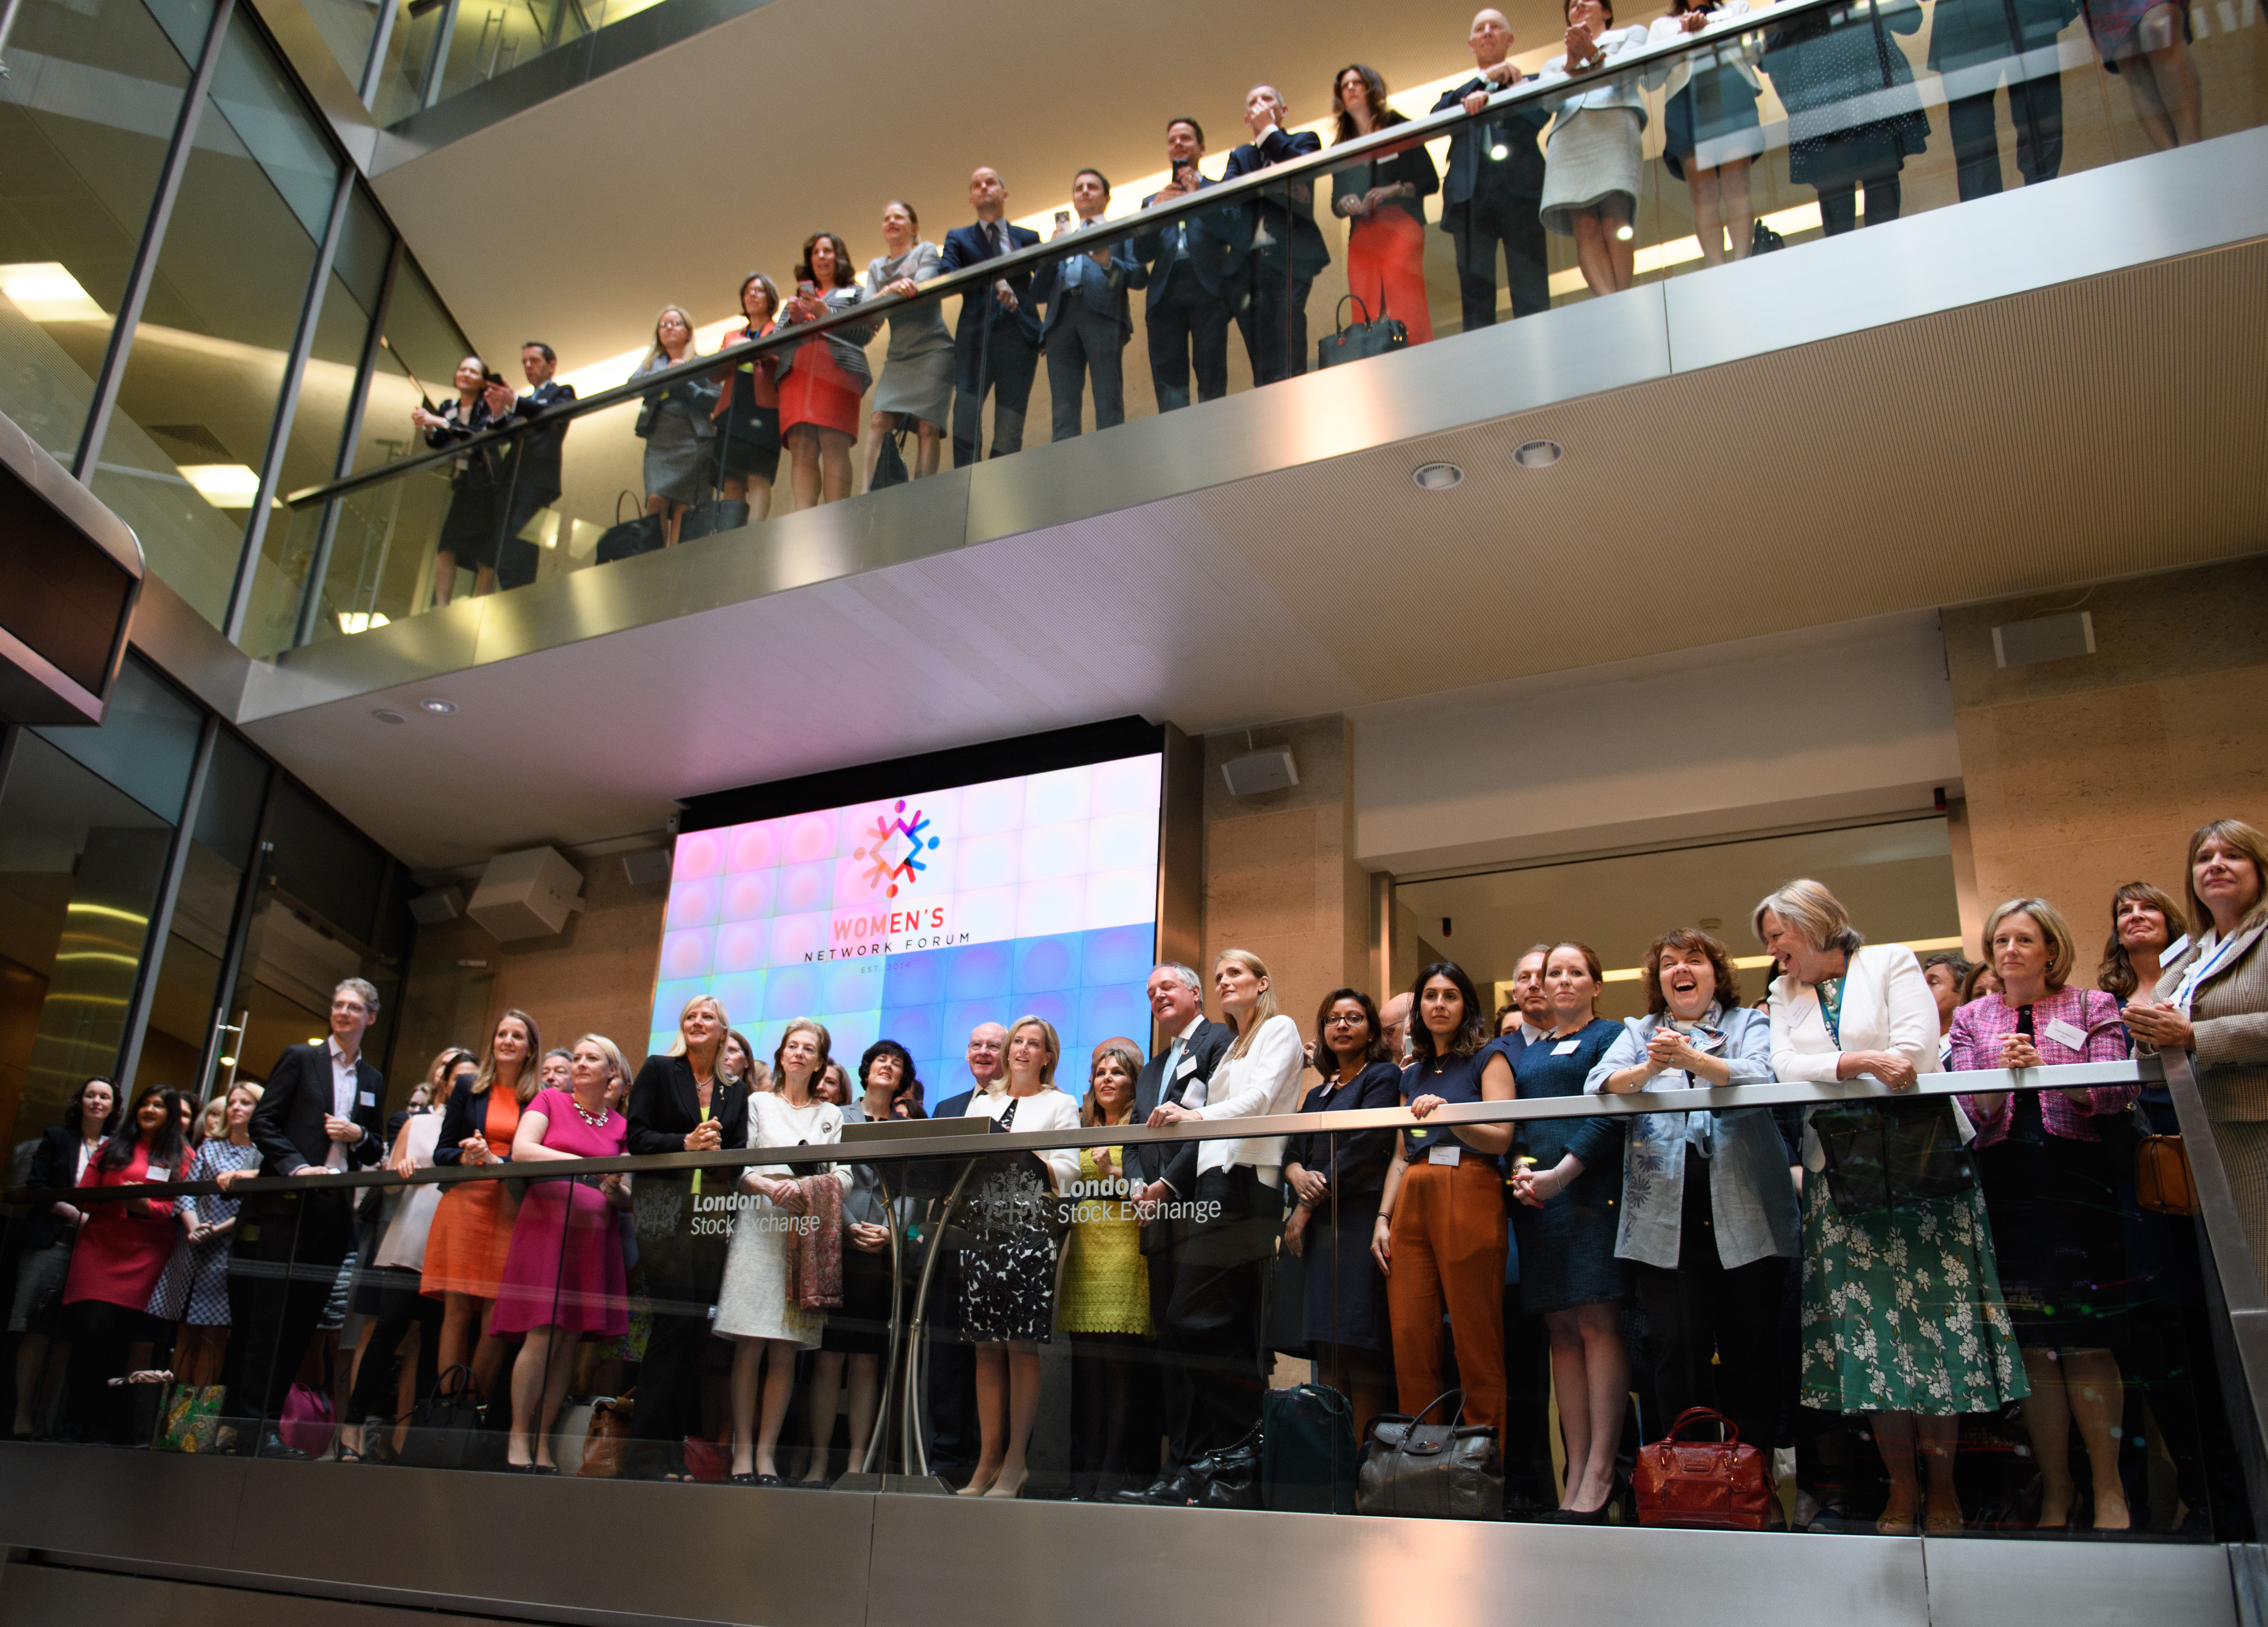 The Countess of Wessex opens the London Stock Exchange as part of the Women's Network Forum